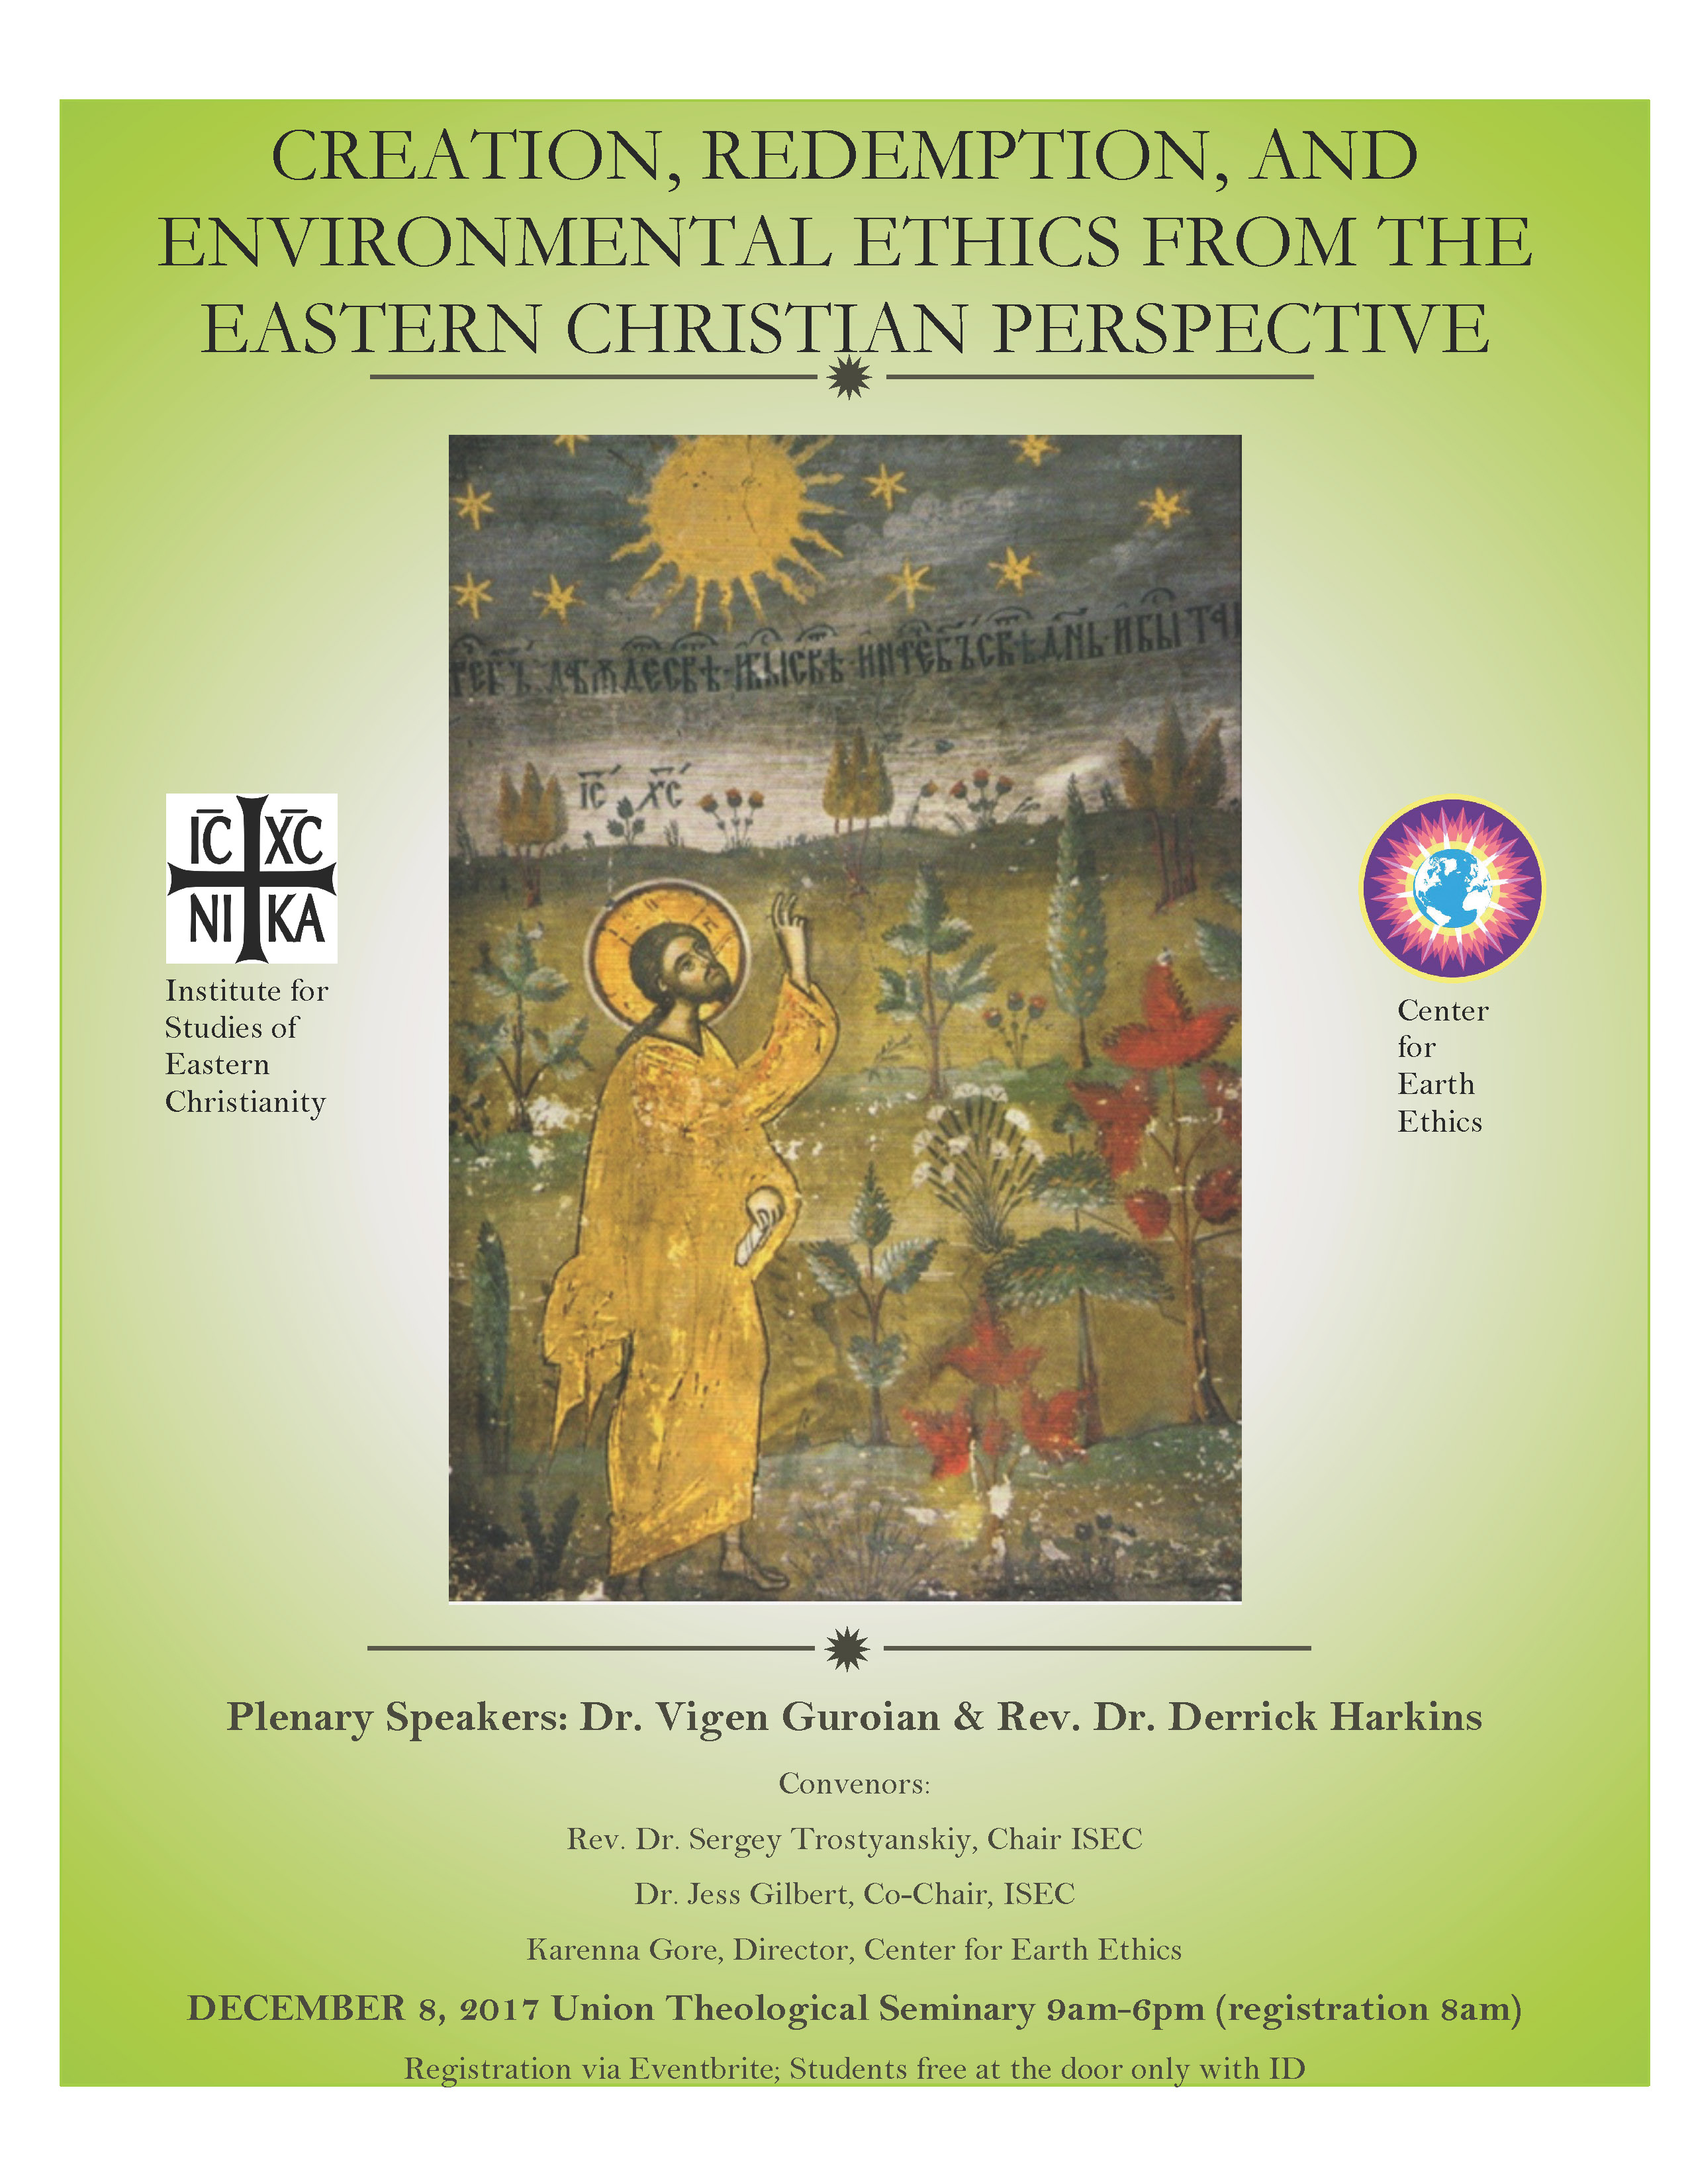 Creation, Redemption, and Environmental Ethics from the Eastern Christian Perspective @ Union Theological Seminary | New York | New York | United States